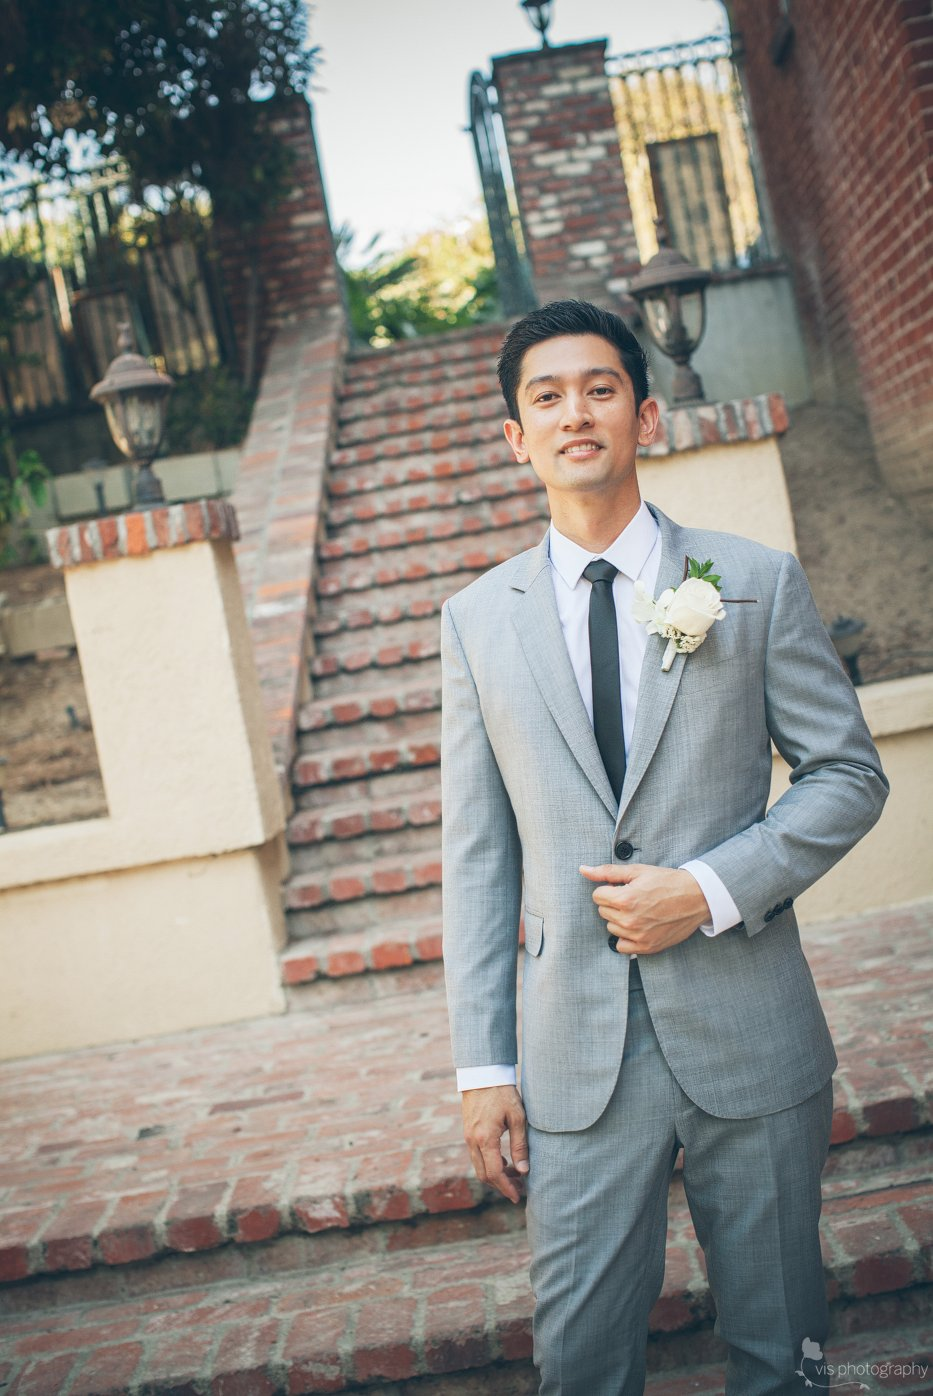 California groom wears light gray suit